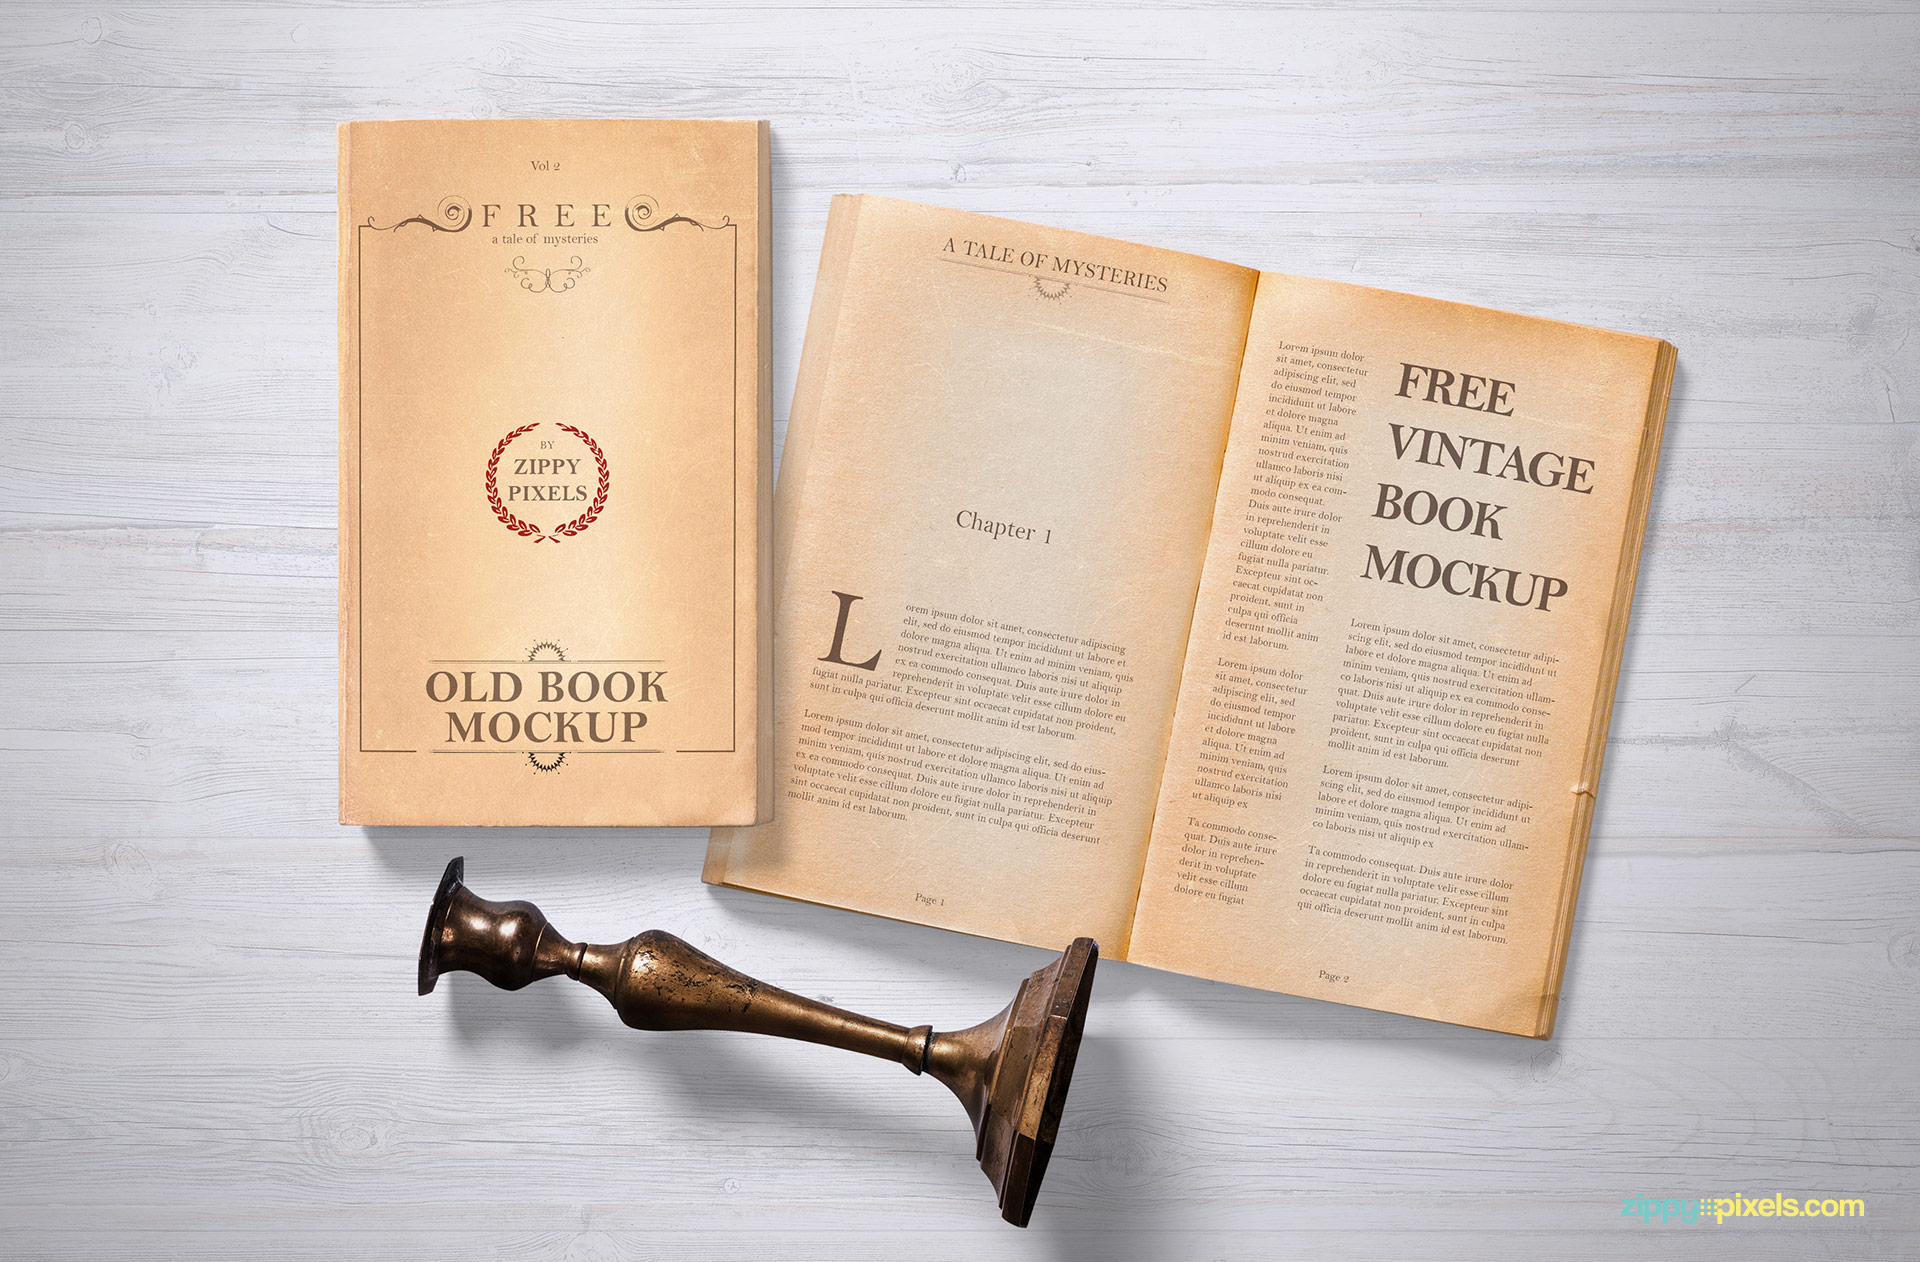 Free old grunge book mockup on wooden background.